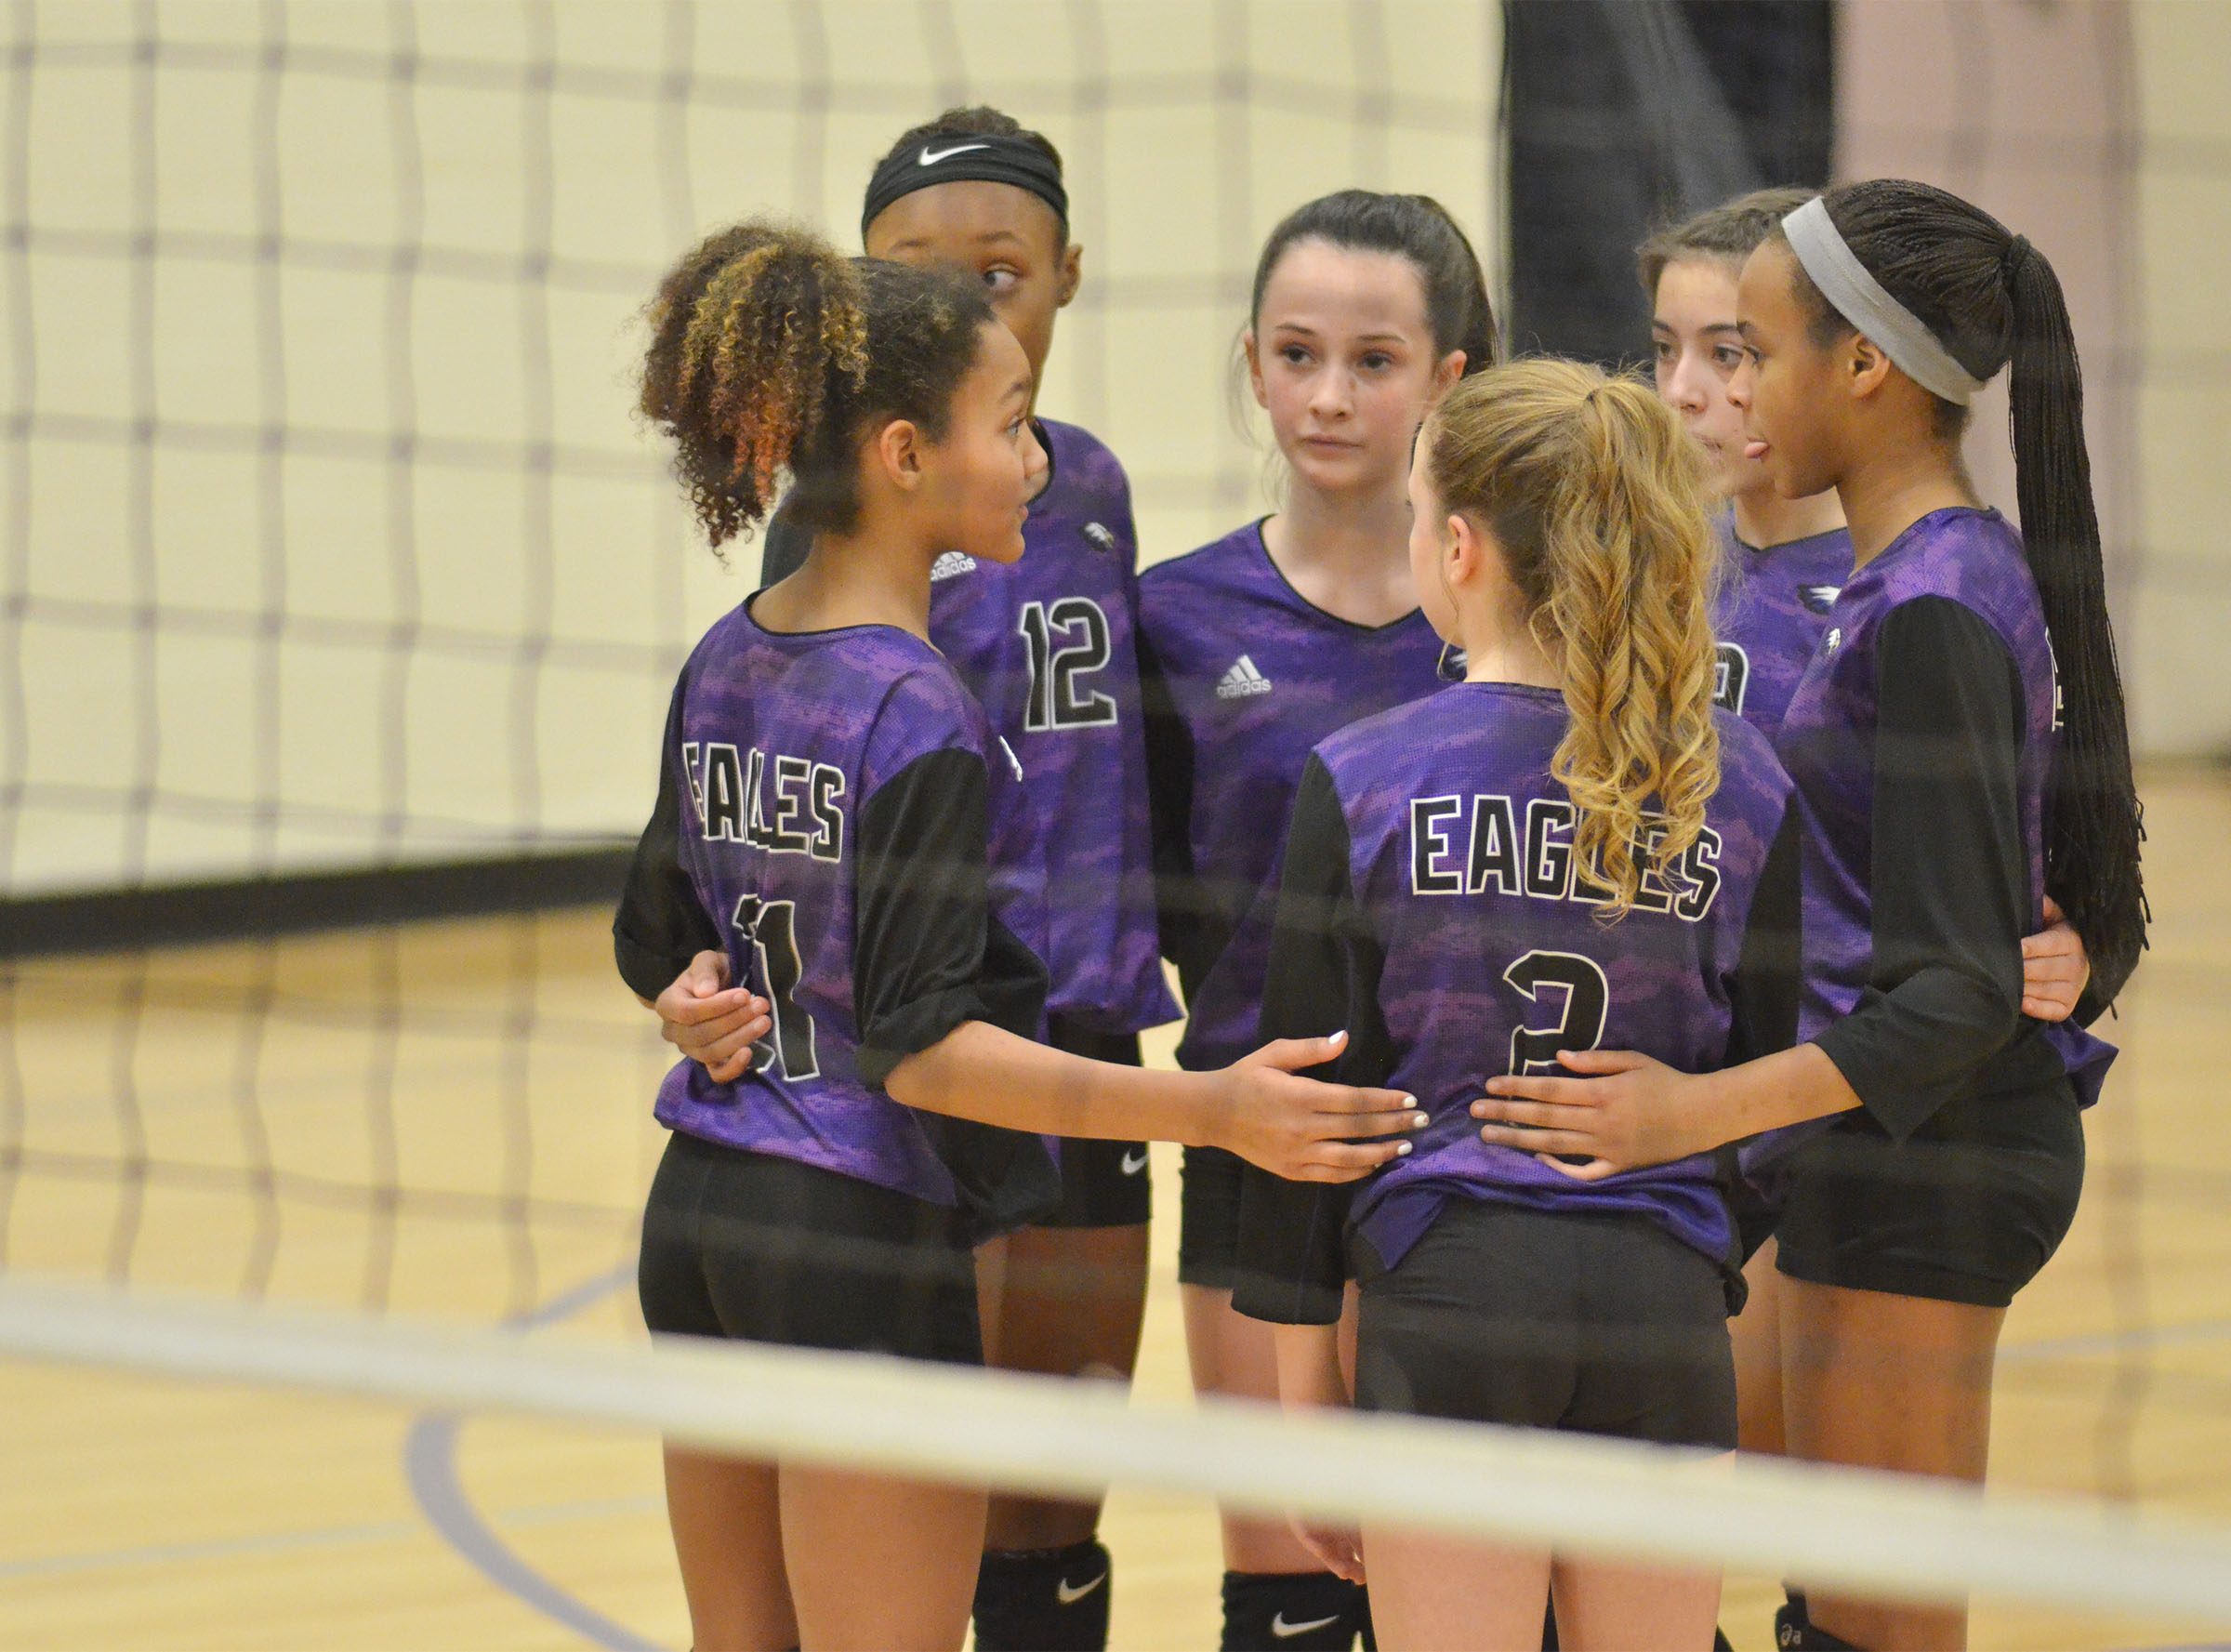 CMS volleyball players talk before a play.